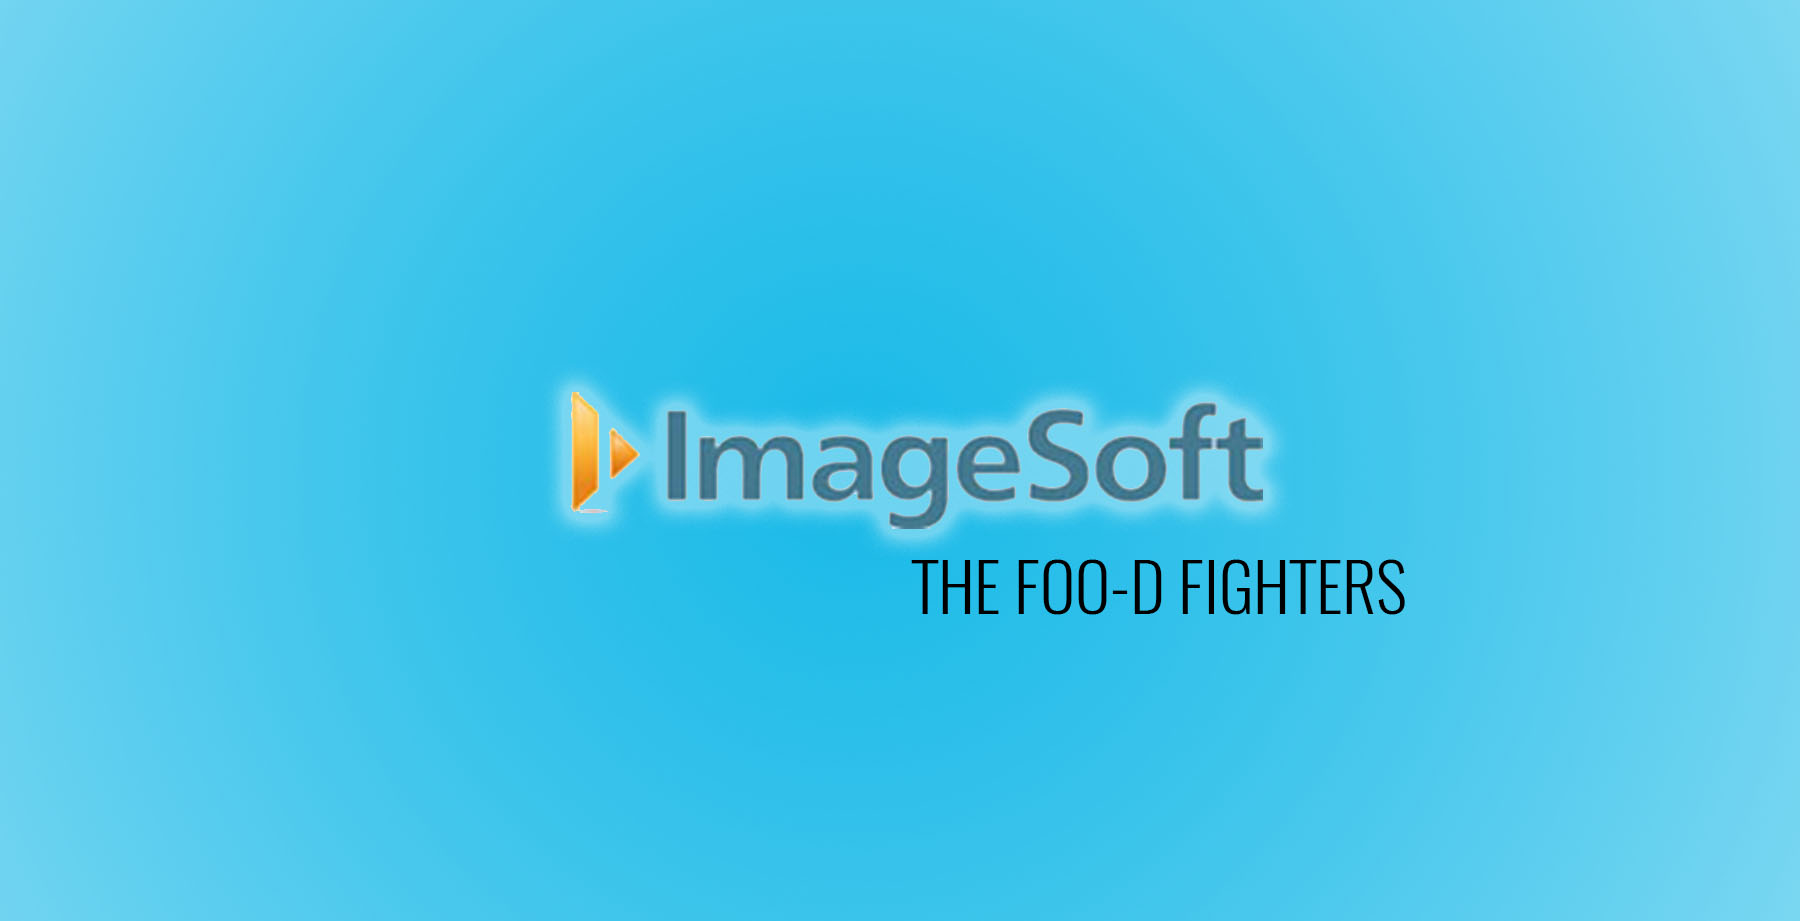 ImageSoft – The Foo-d Fighters